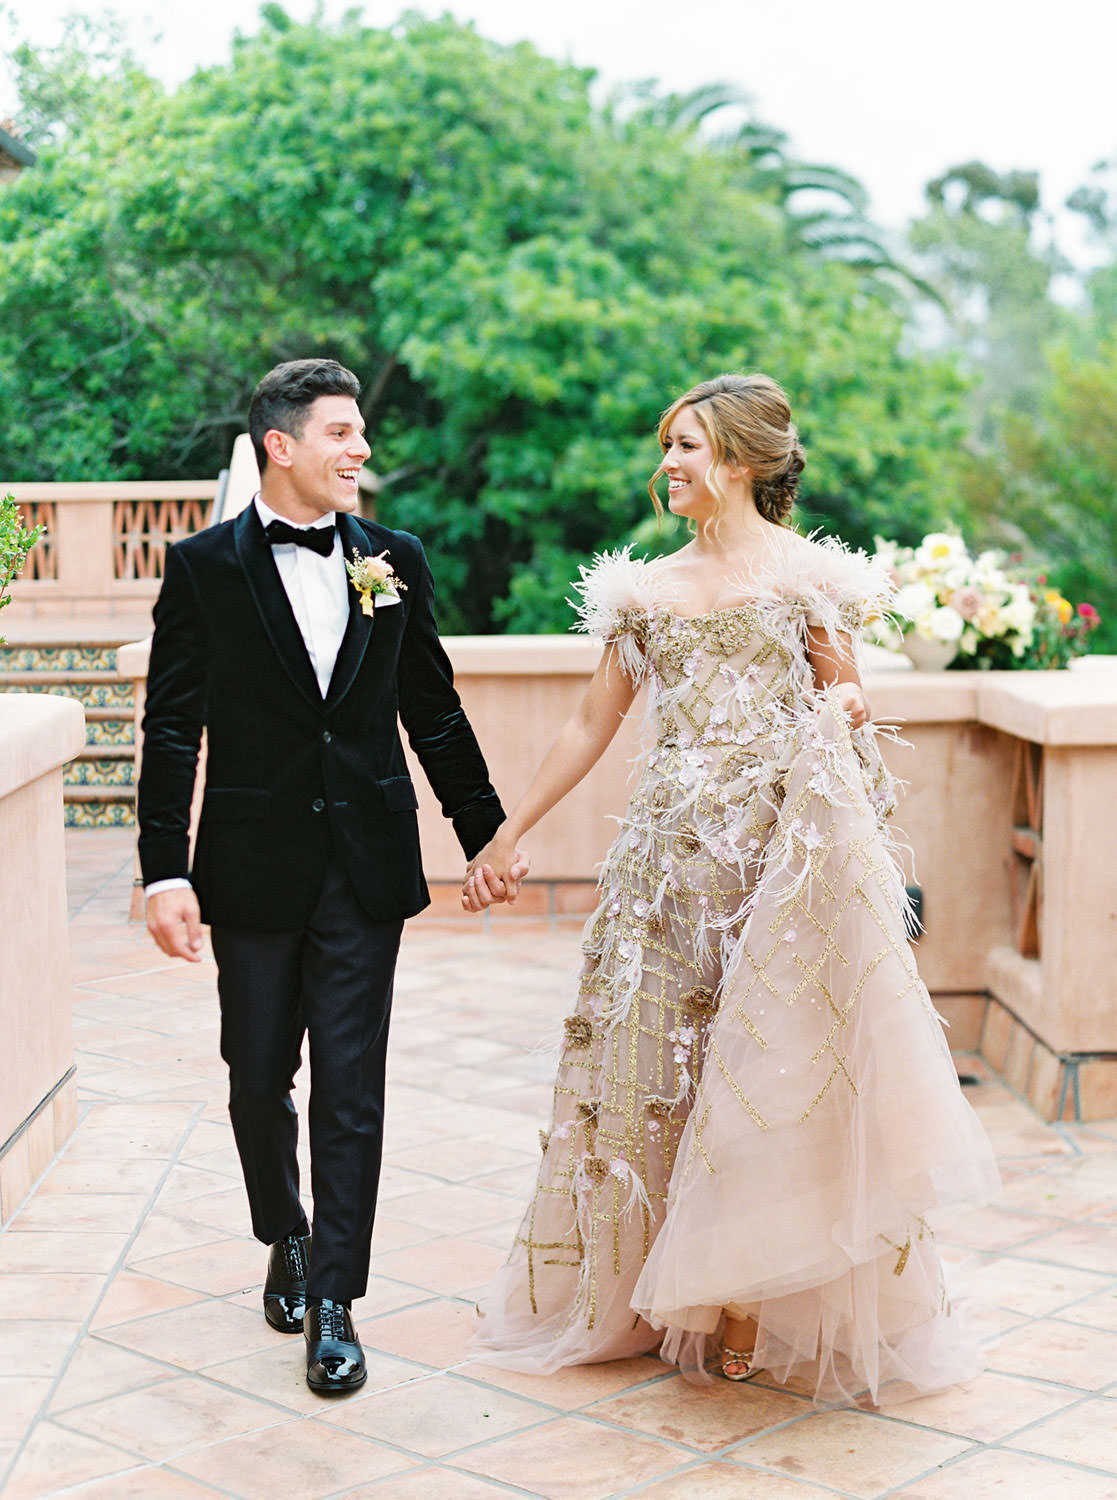 Groom in black velvet tuxedo walking with bride wearing a Marchesa couture gown with blush feathers, gold lines, and floral embellishments. Honey and Beekeeper Inspired Wedding at Rancho Valencia on film by Cavin Elizabeth Photography